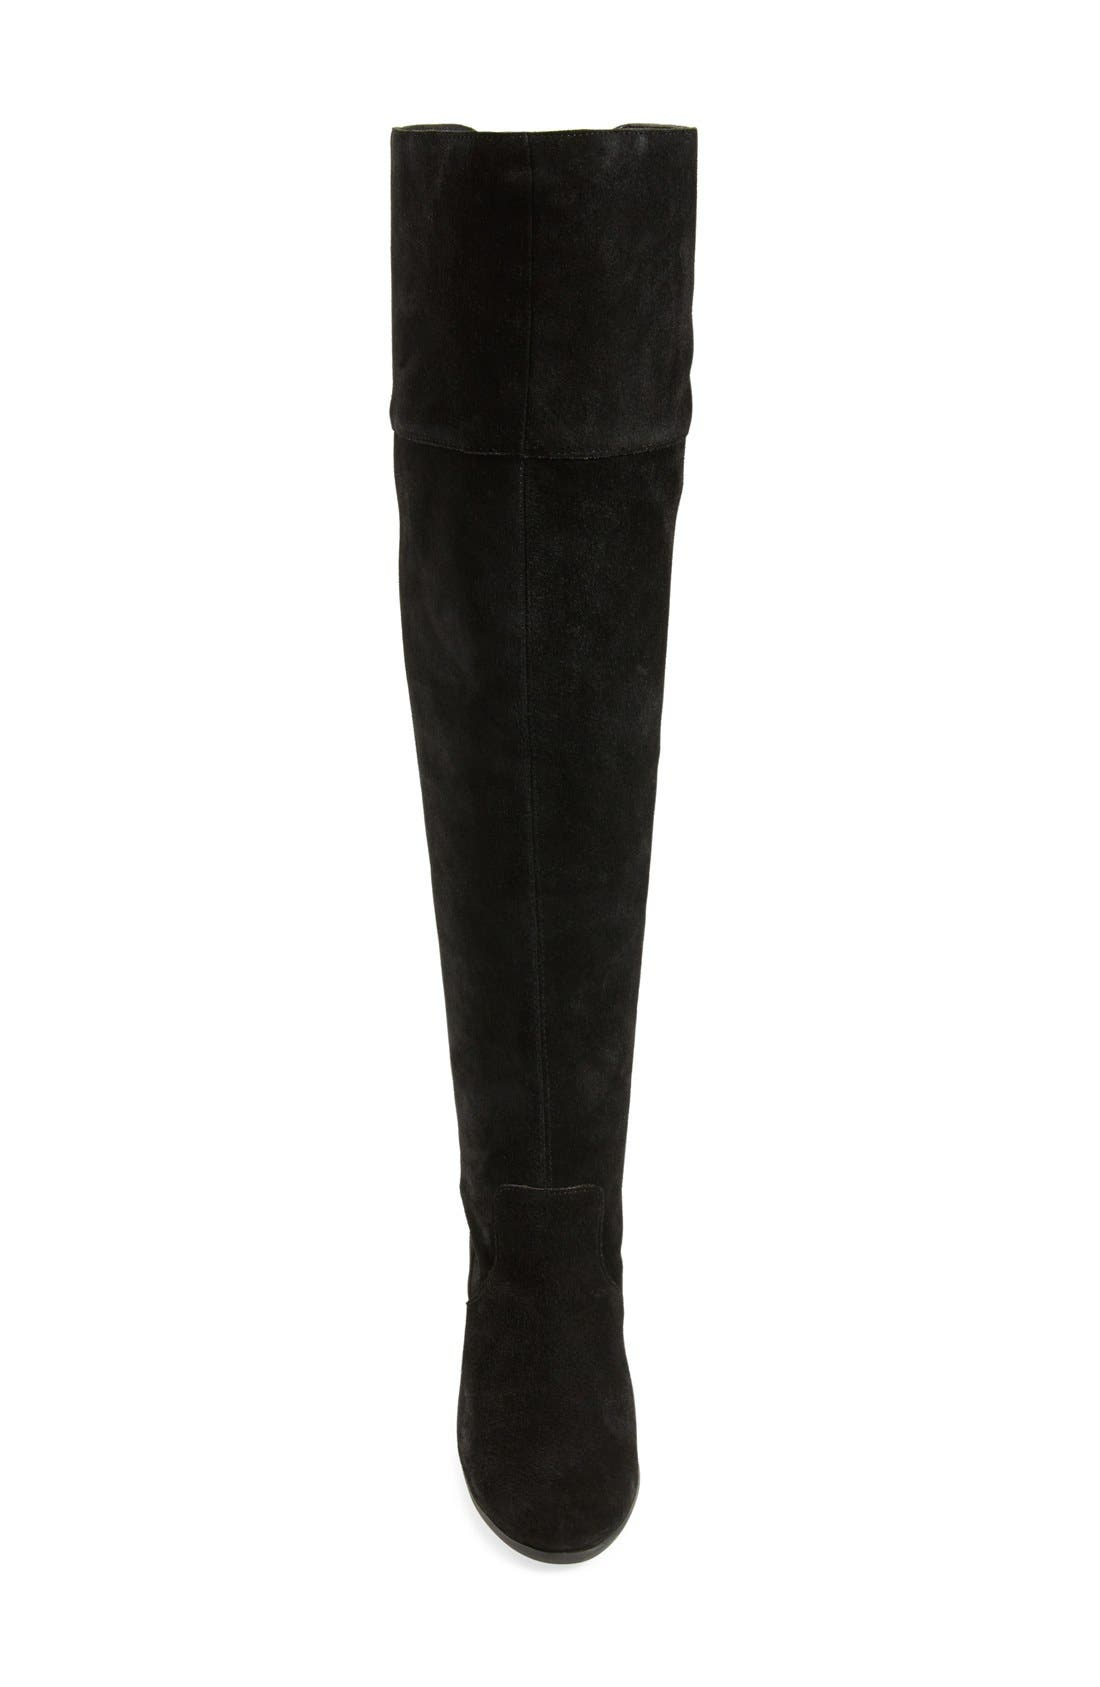 JessicaSimpson'Ebyy' Over the KneeBoot,                             Alternate thumbnail 3, color,                             001